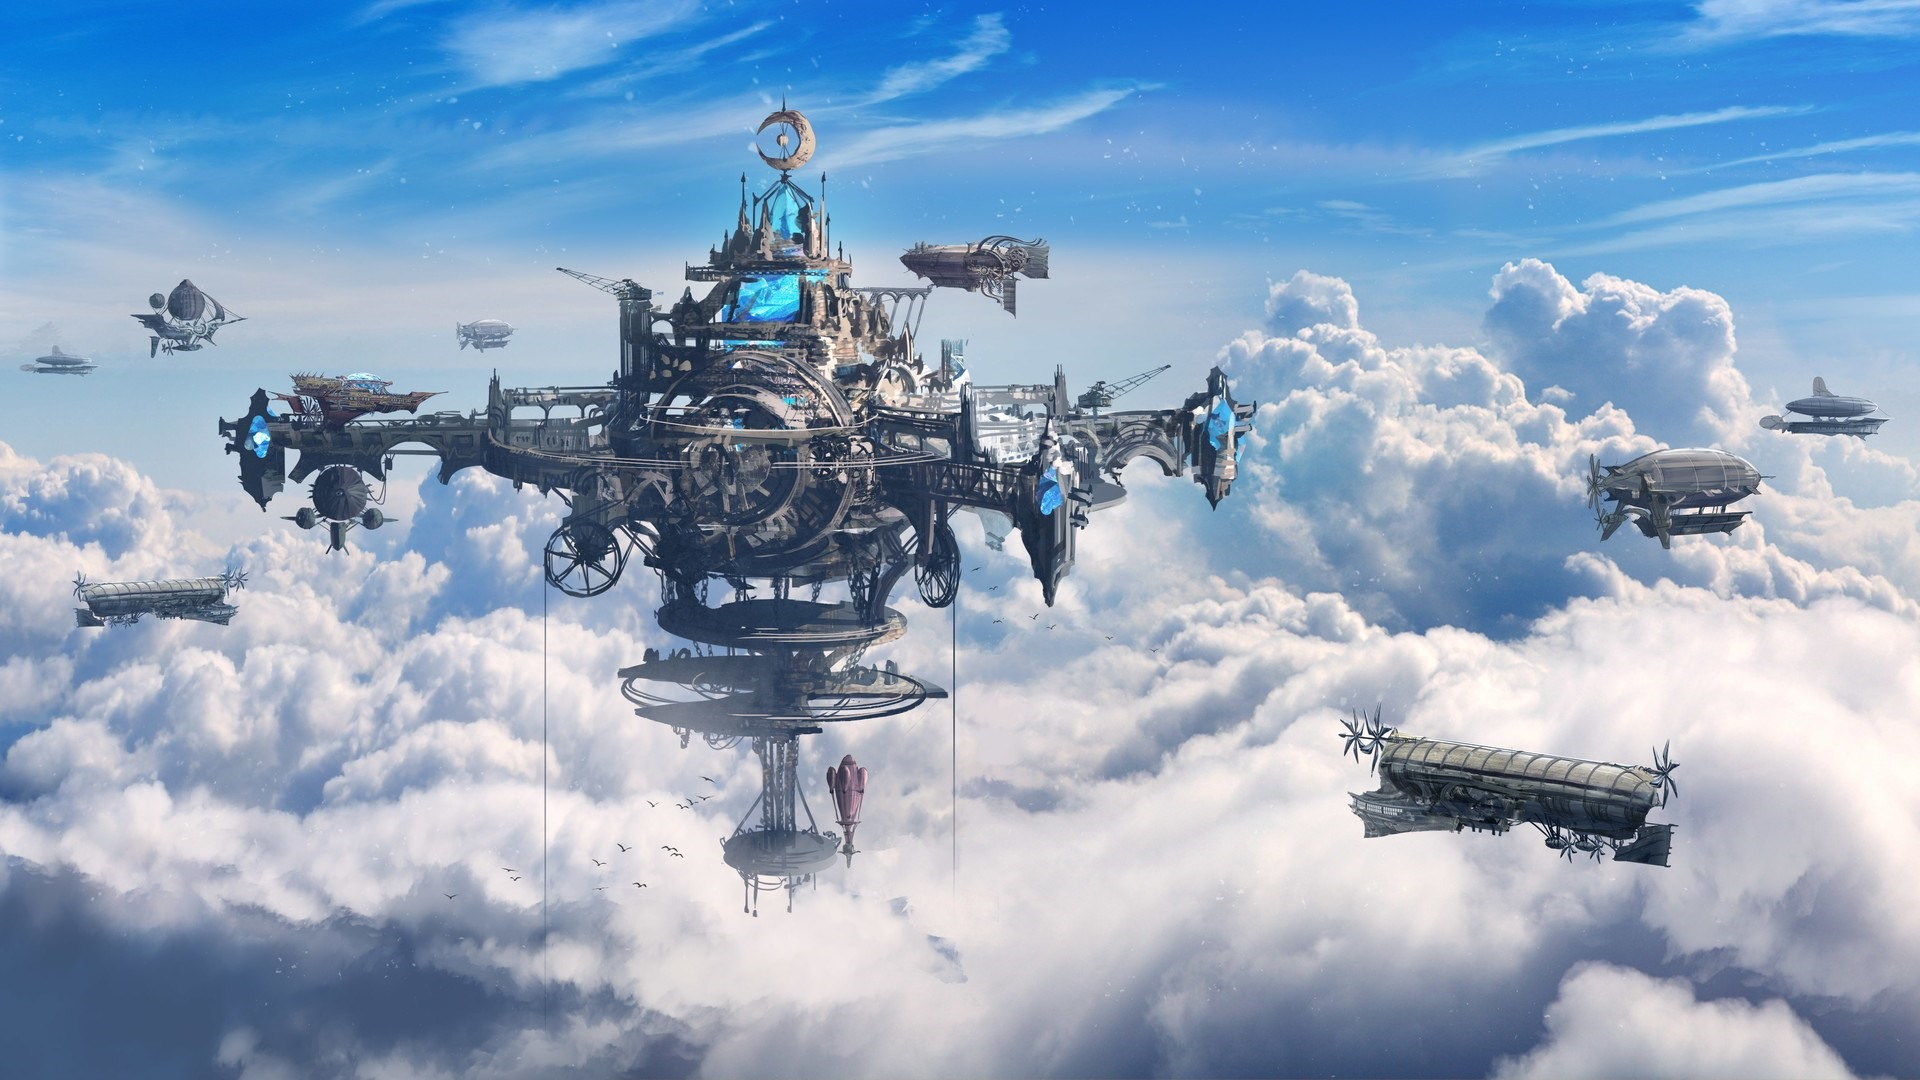 Floating steampunk city in the sky wallpaper